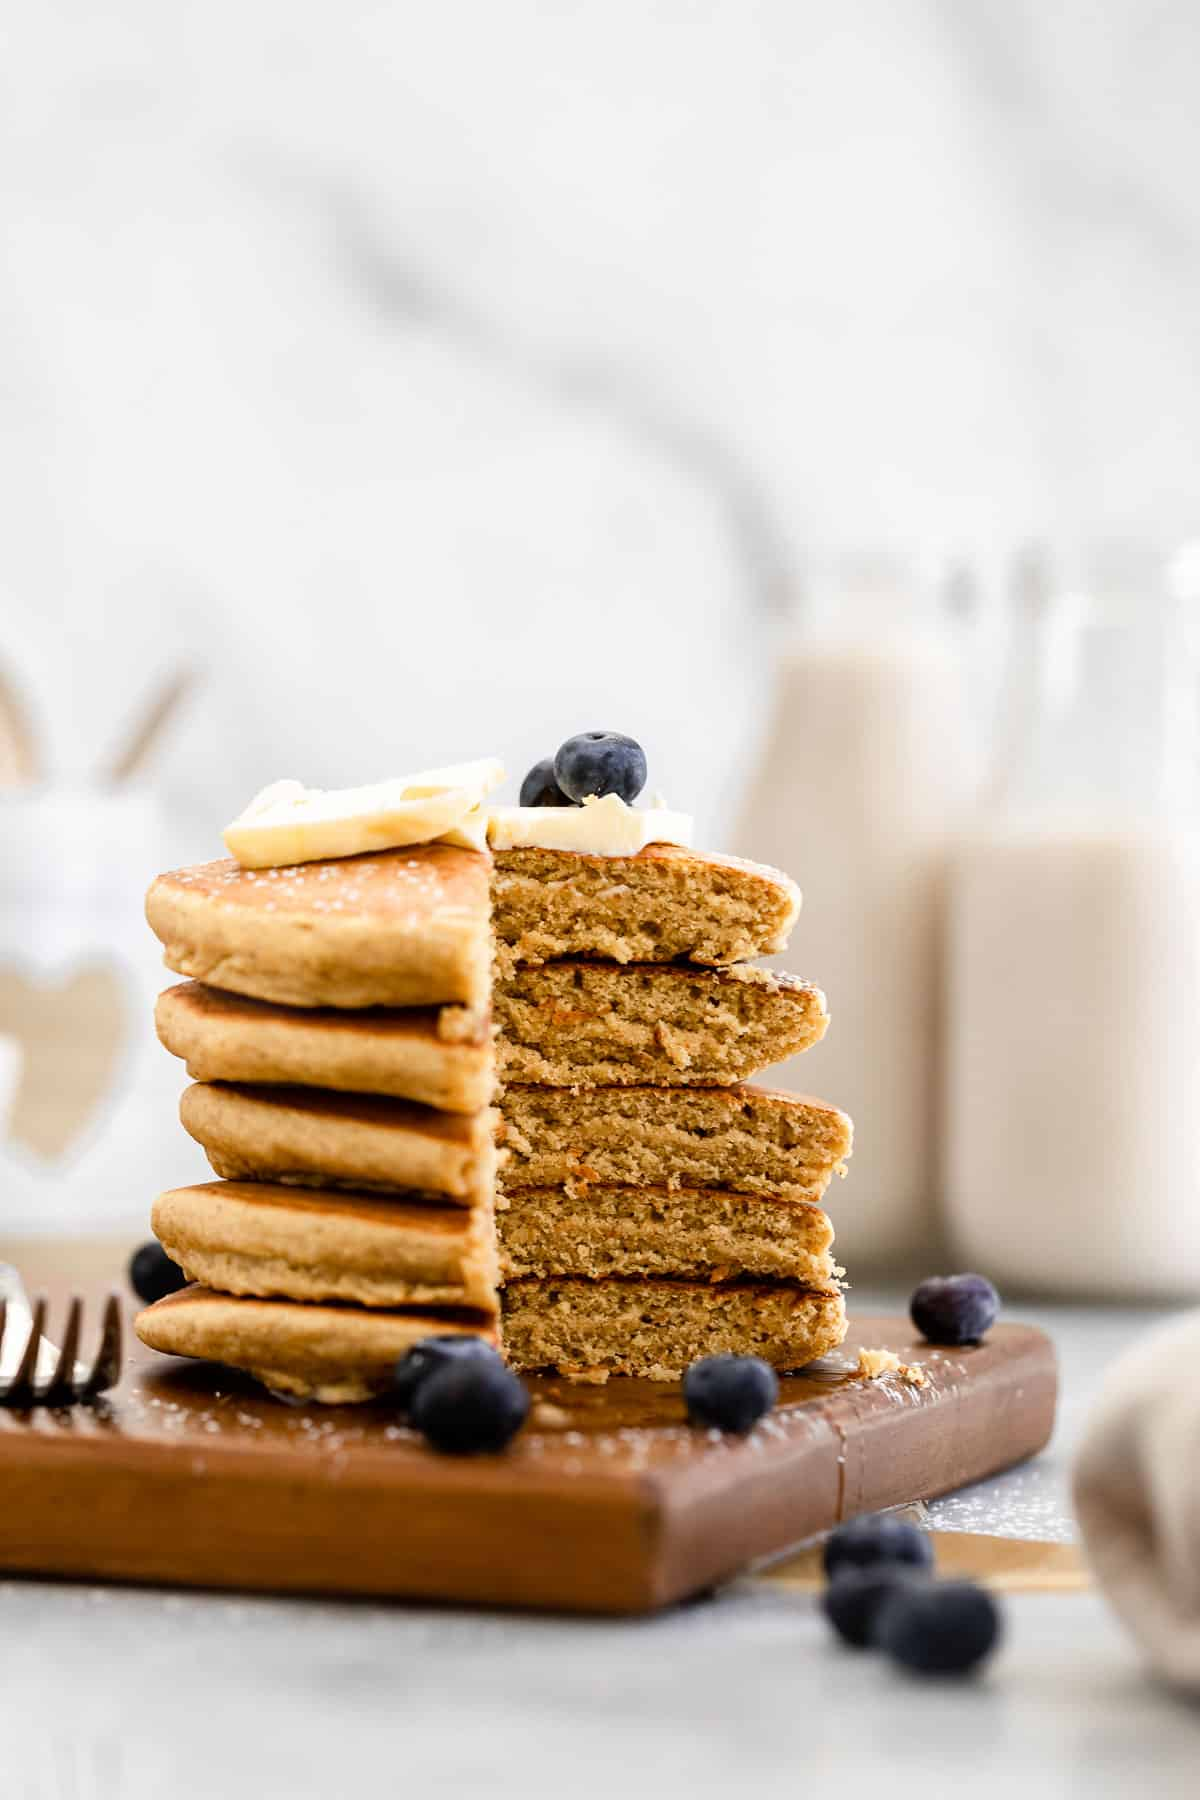 stack of chickpea flour pancakes with a bite cut out